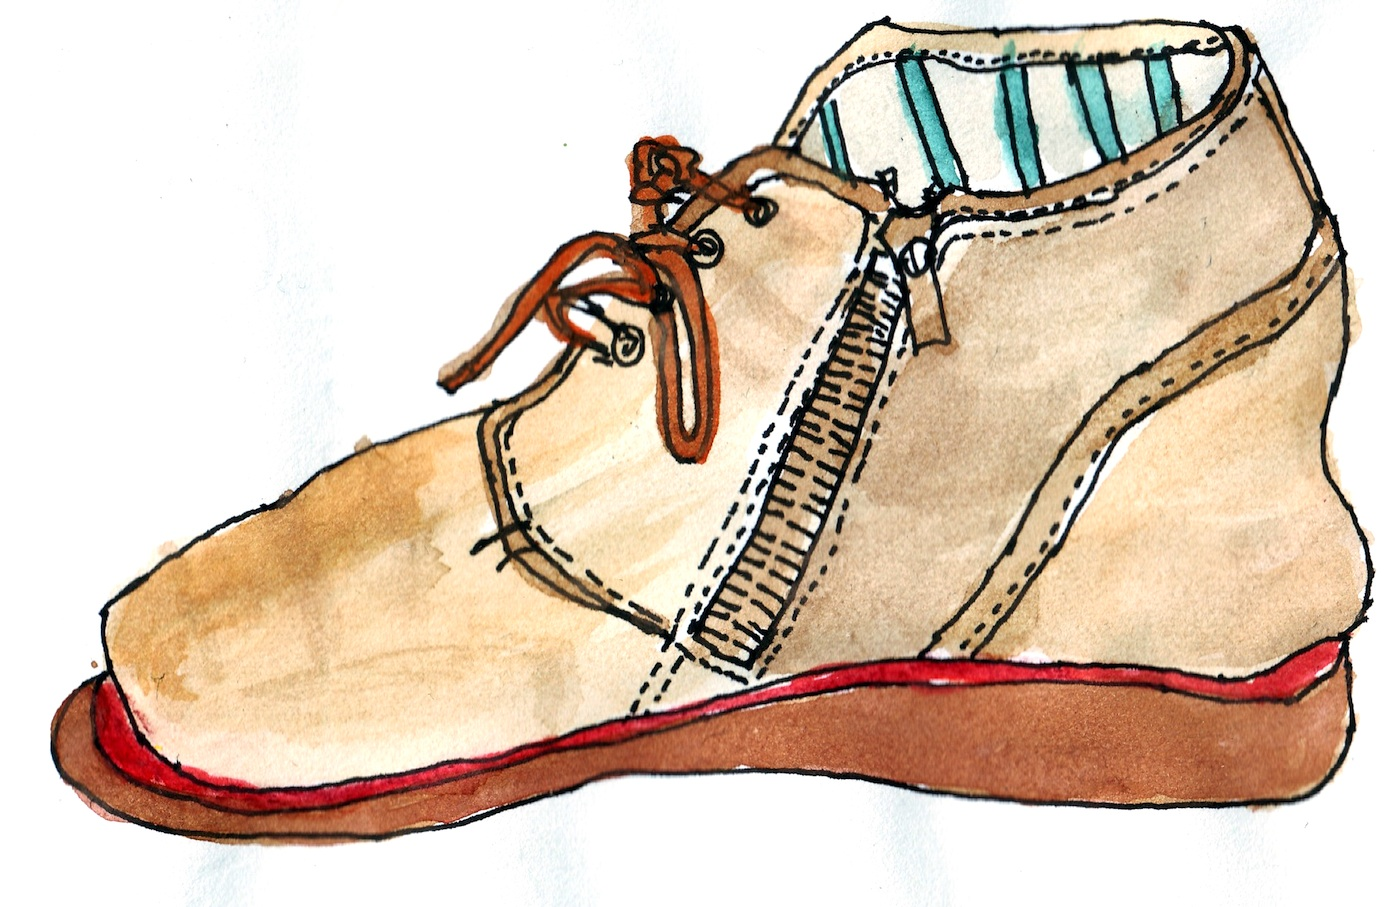 1400x907 Shoe {Drawing} The Blog Of Marc Hummel Brooklyn, Ny